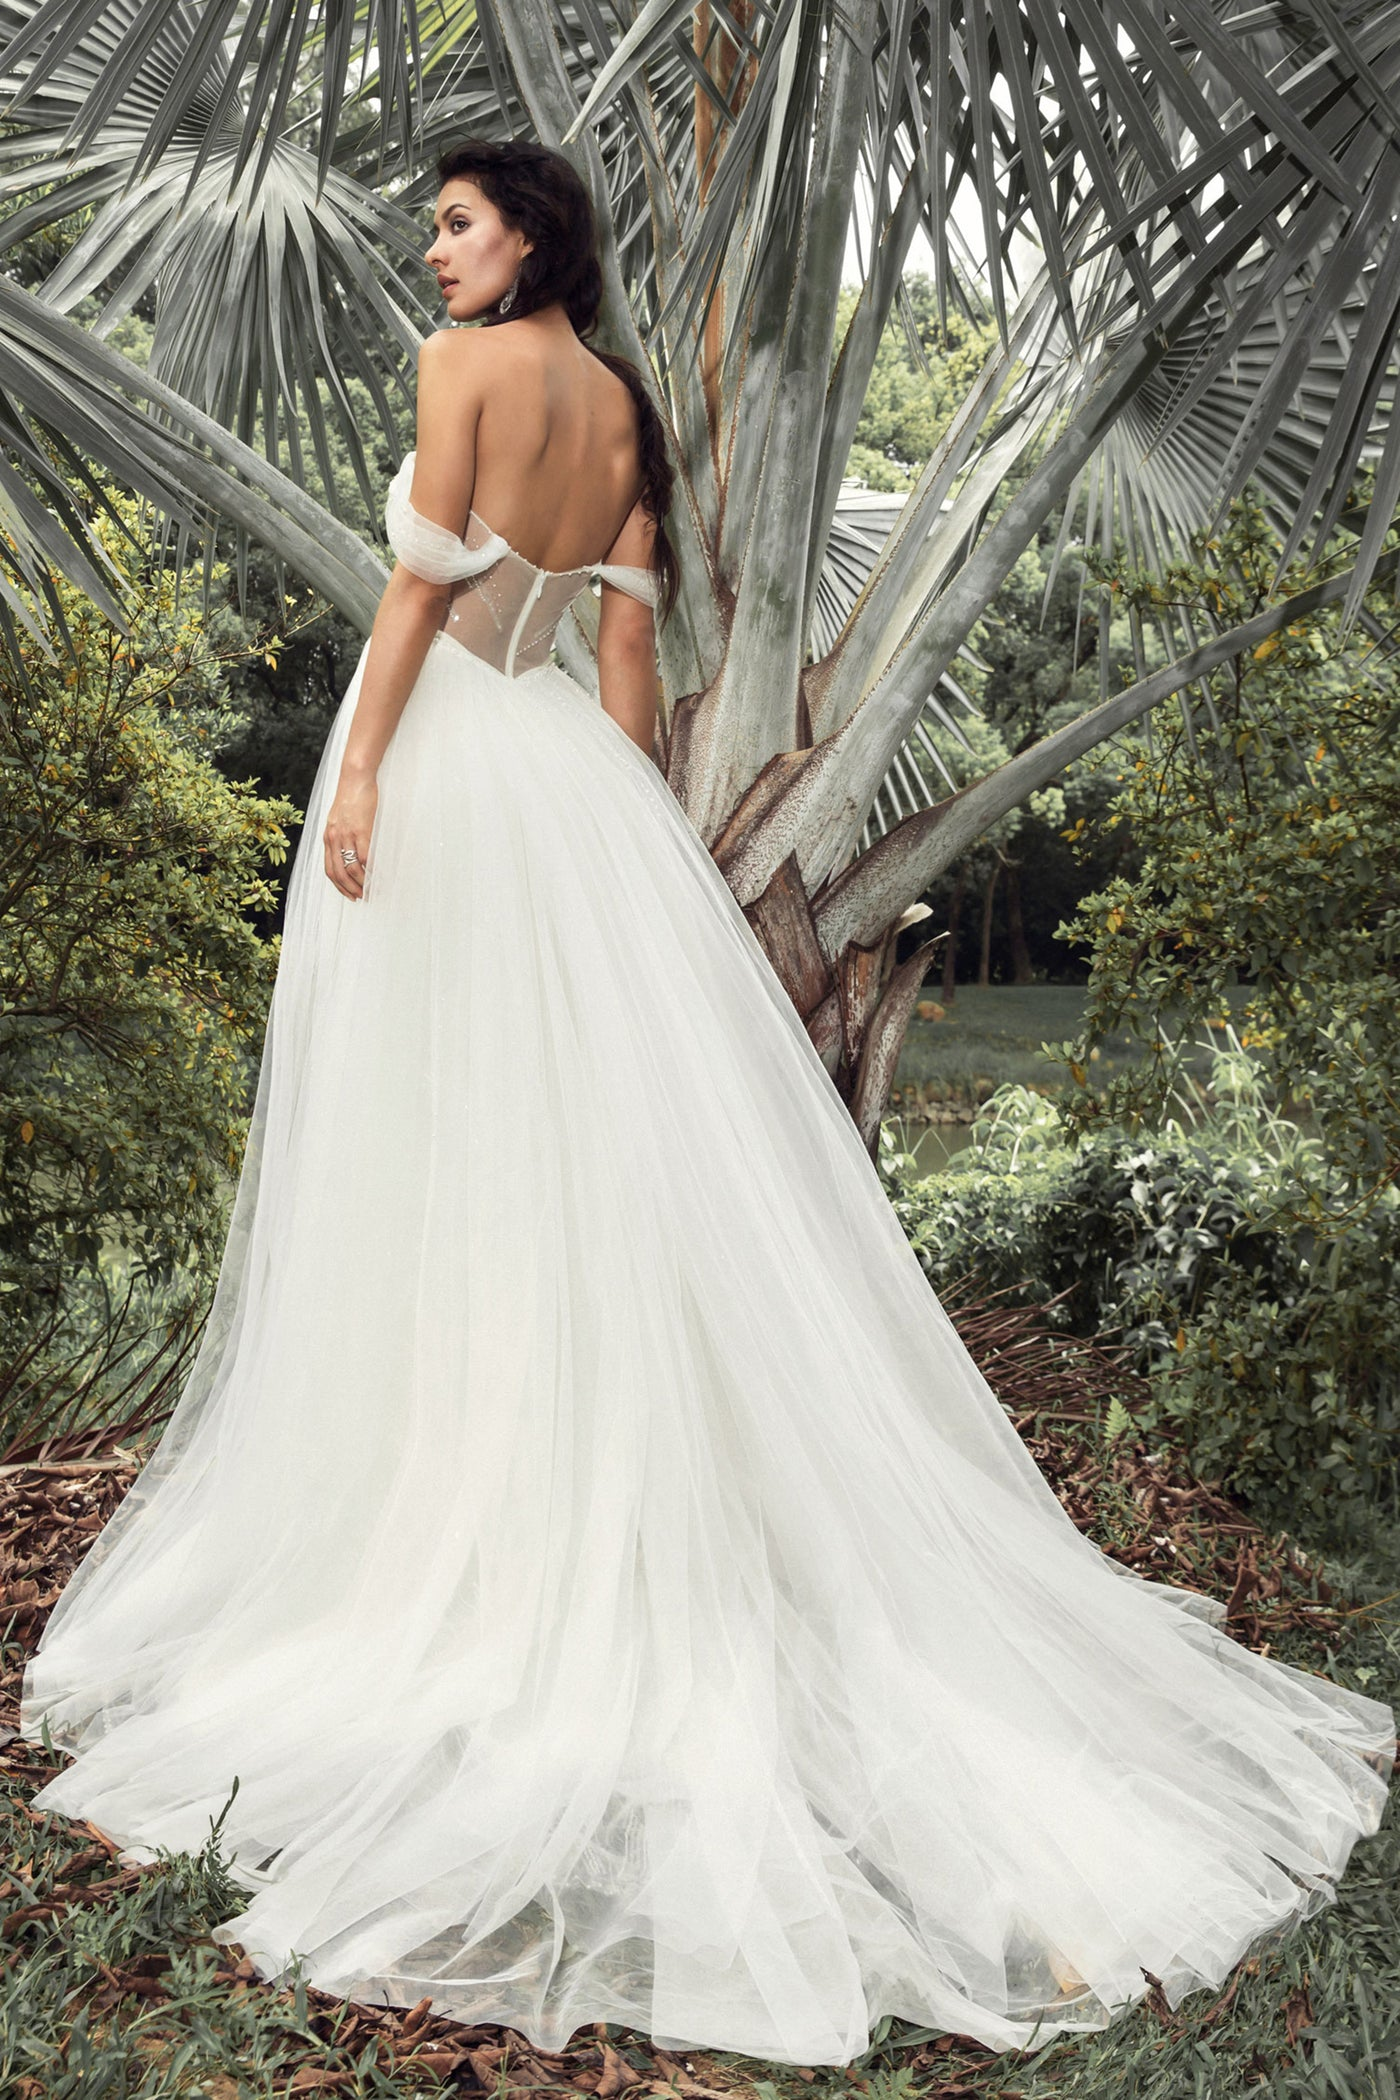 Mia - New, Gown, Chic Nostalgia - Eternal Bridal